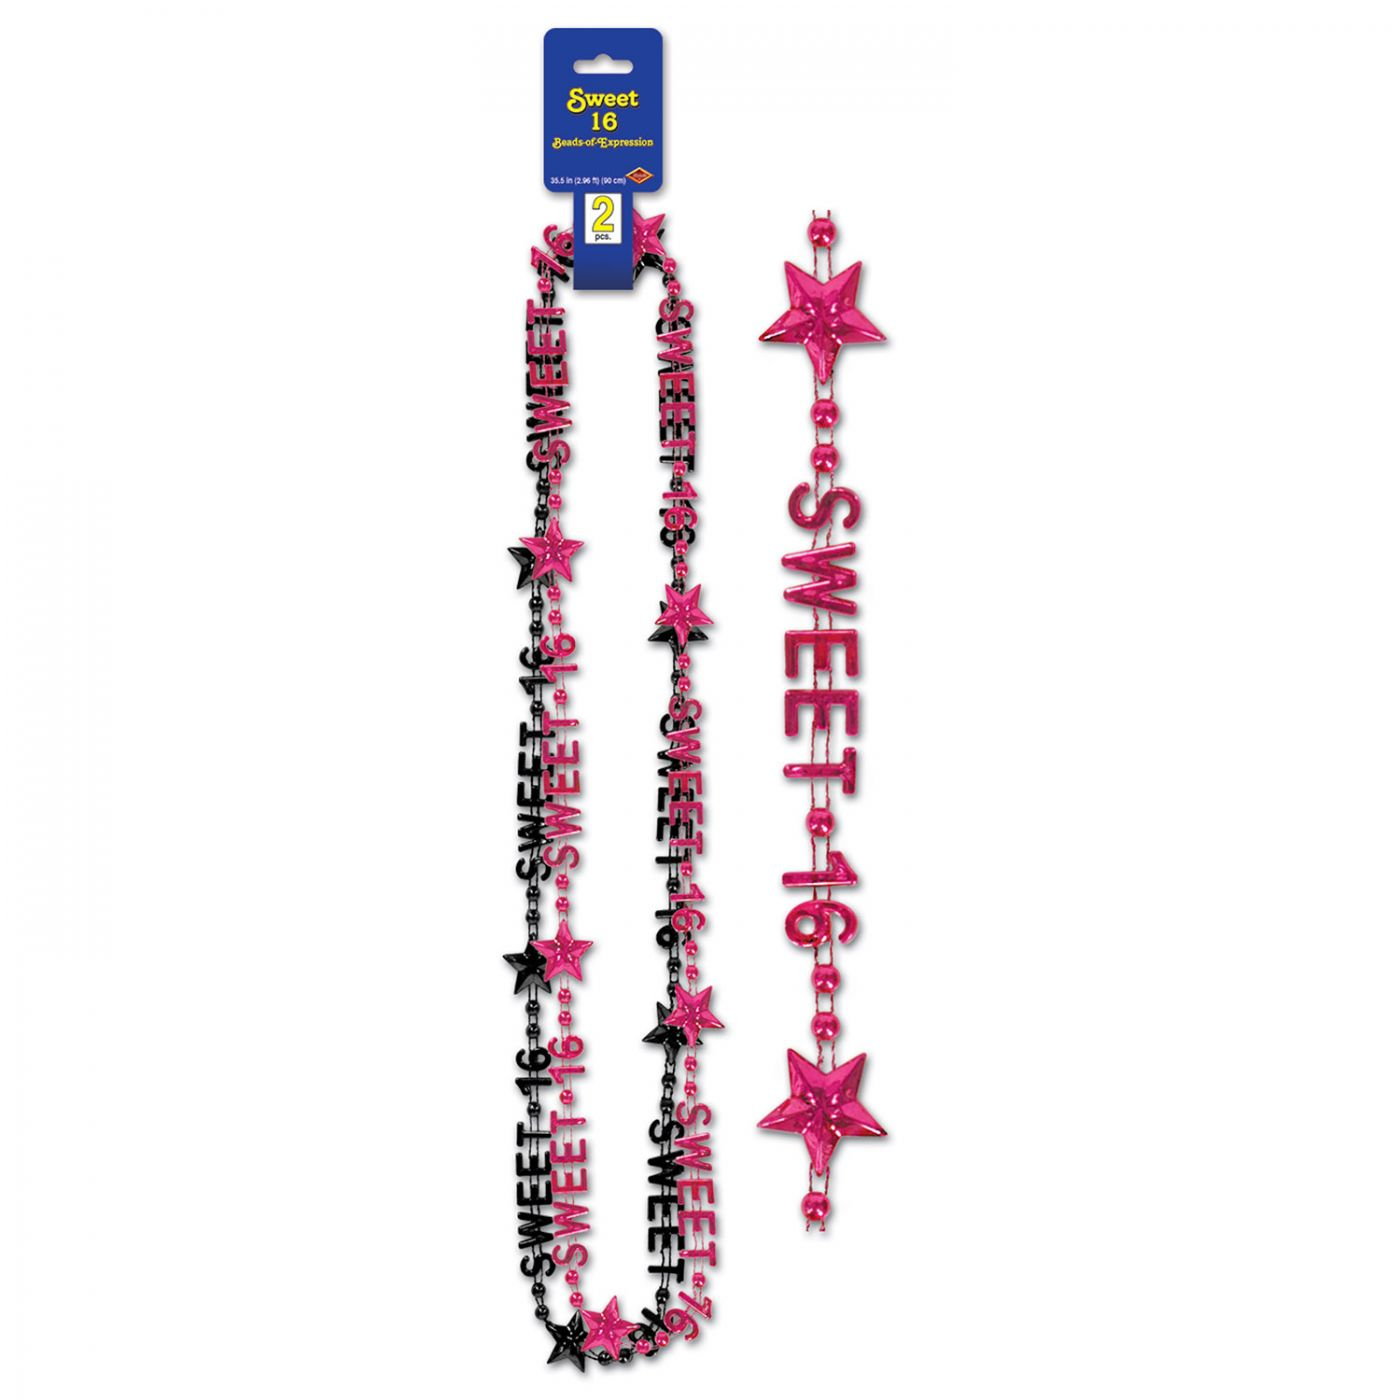 Sweet 16 Beads-Of-Expression image